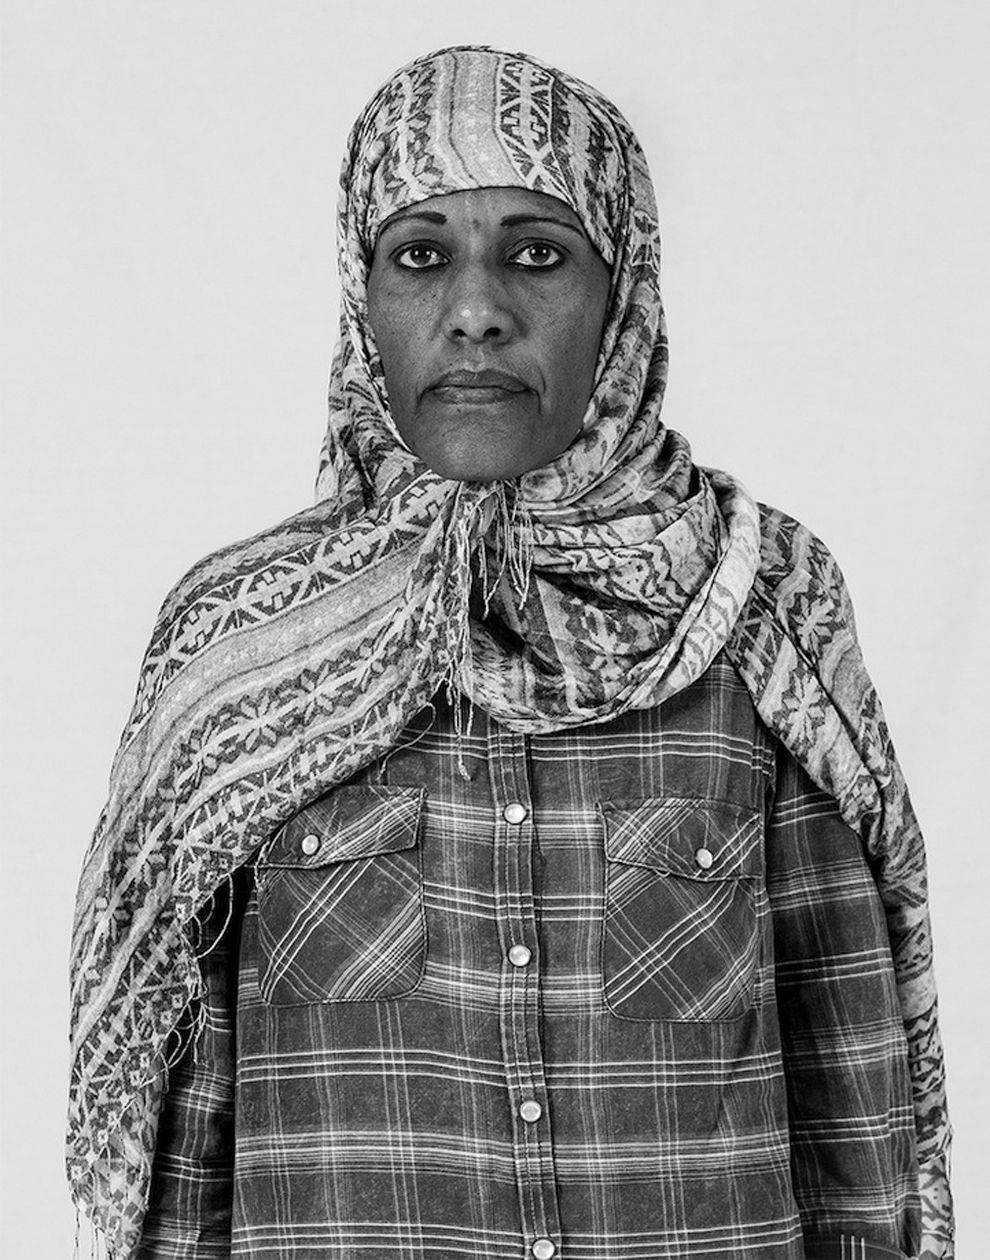 Homeless people portraits minus the stereotype. Rosie Holtom